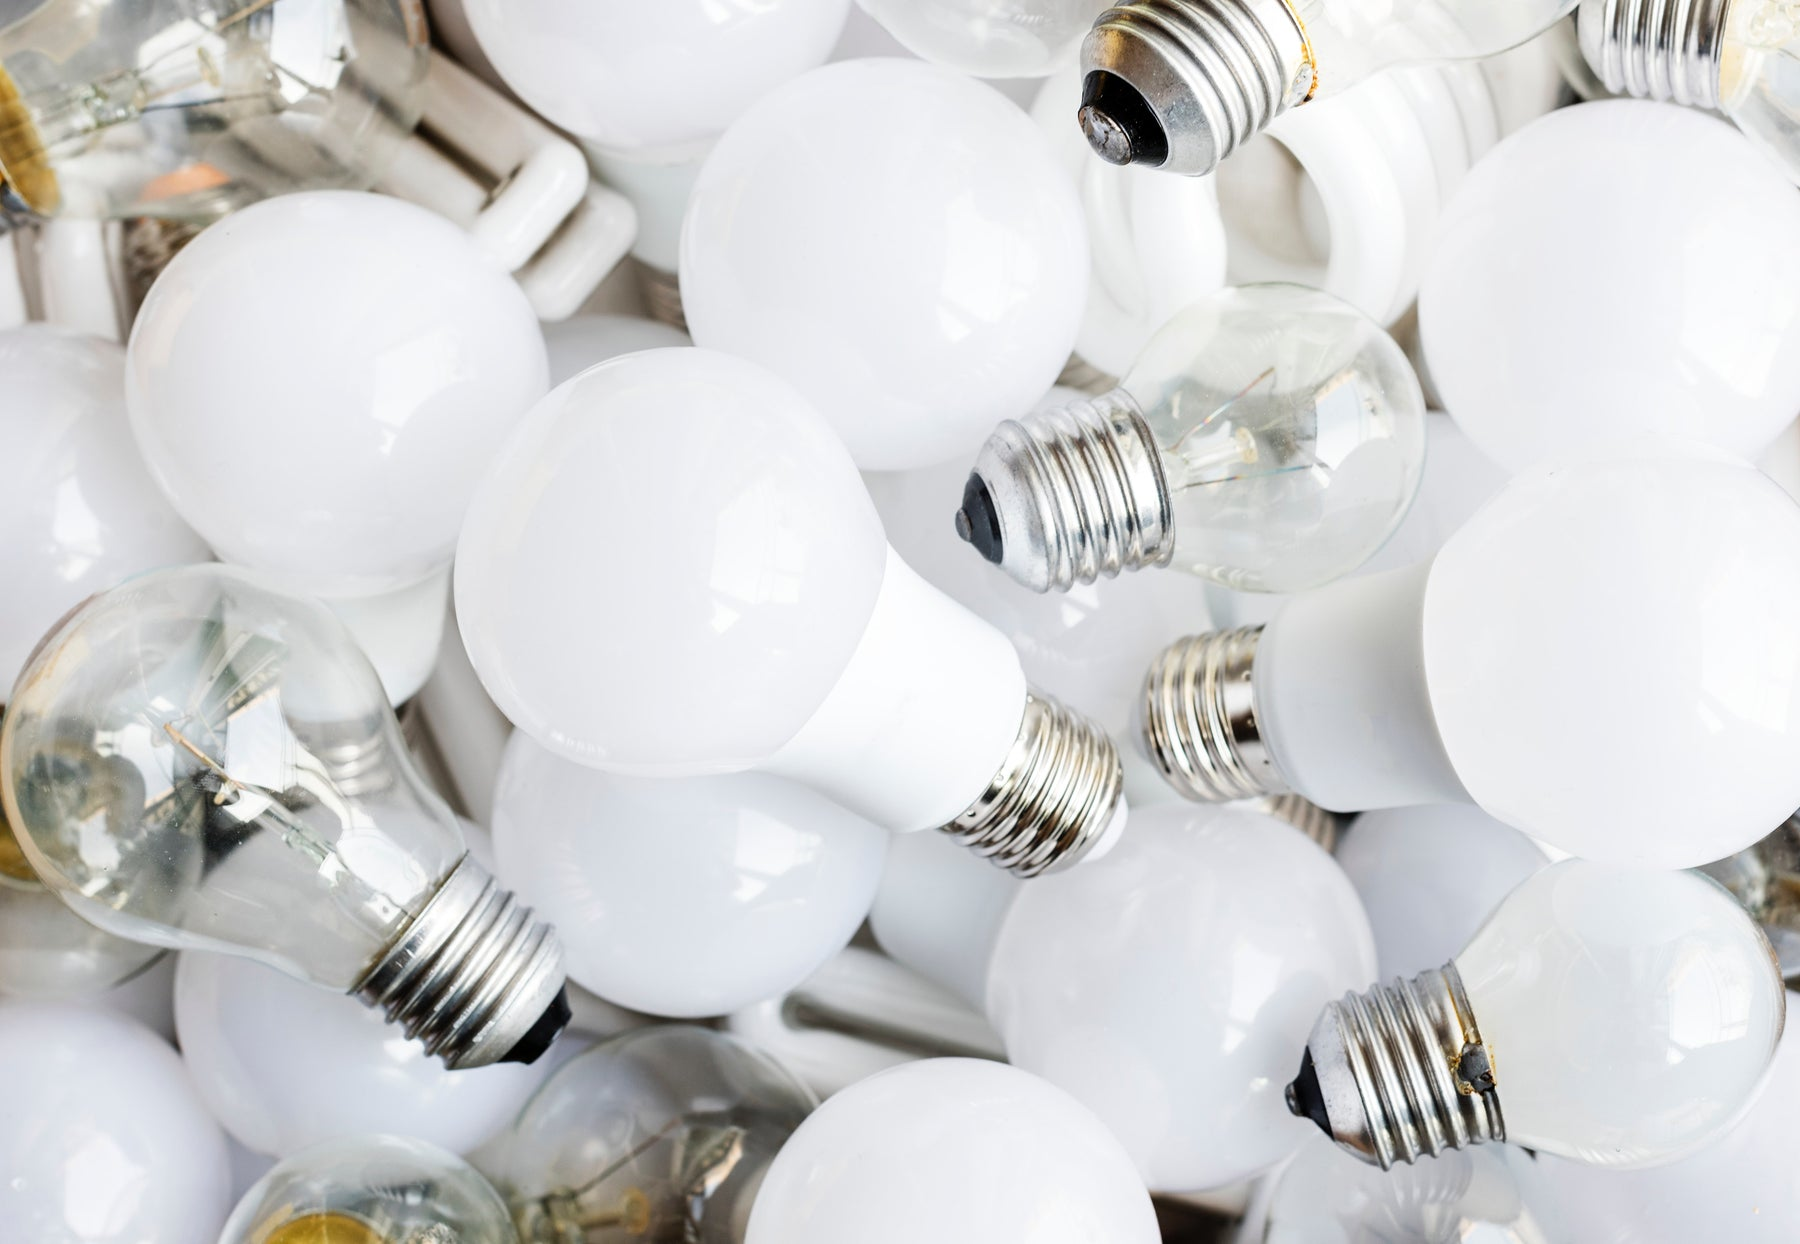 LED Lights Vs Fluorescent Tubes - A Question of Health and Energy Savings